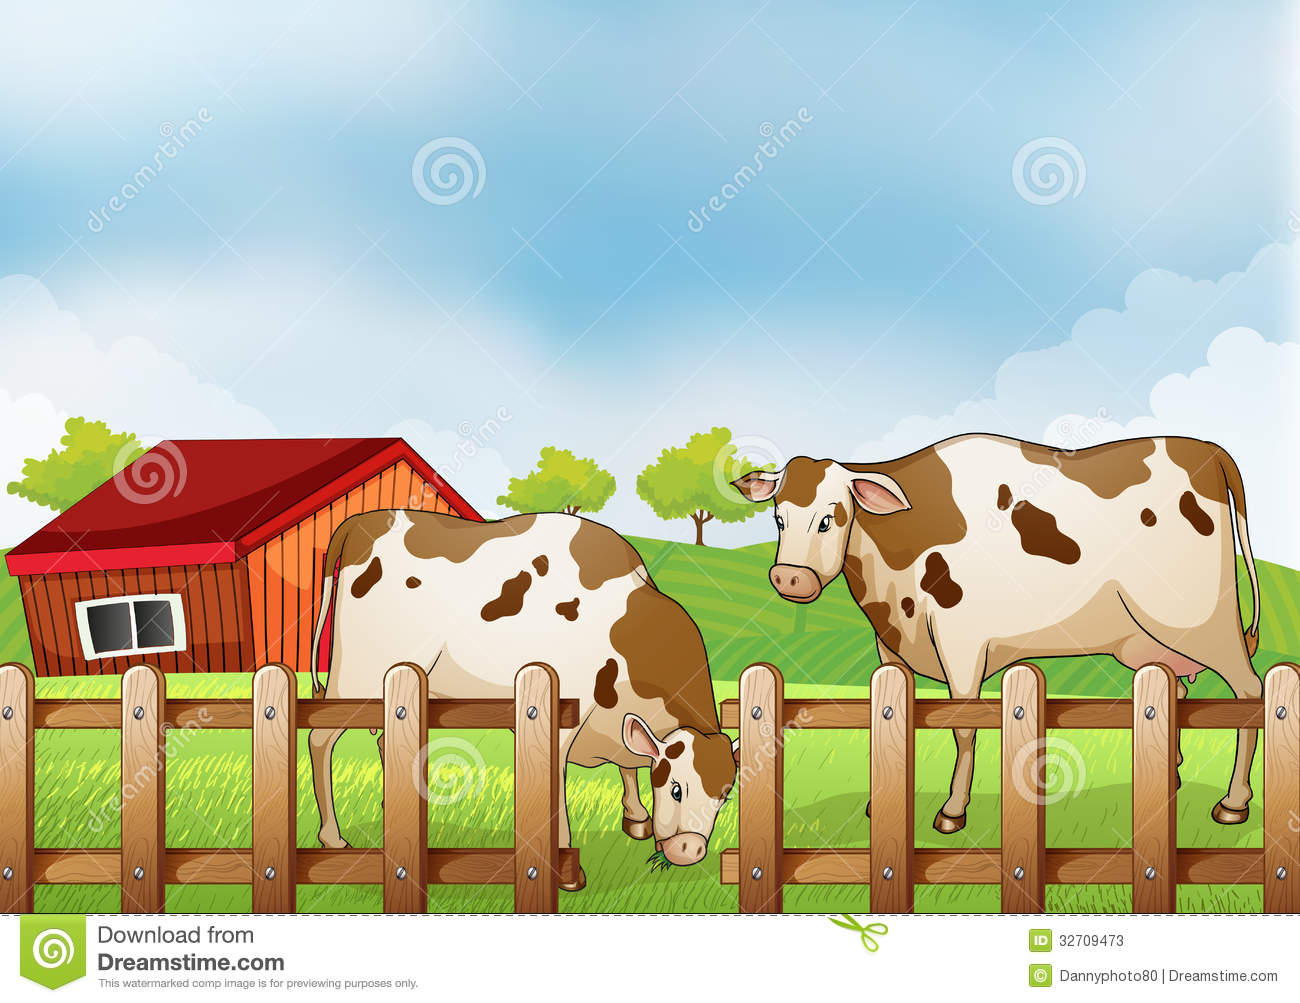 Farm Fence Drawing Illustration With Decor